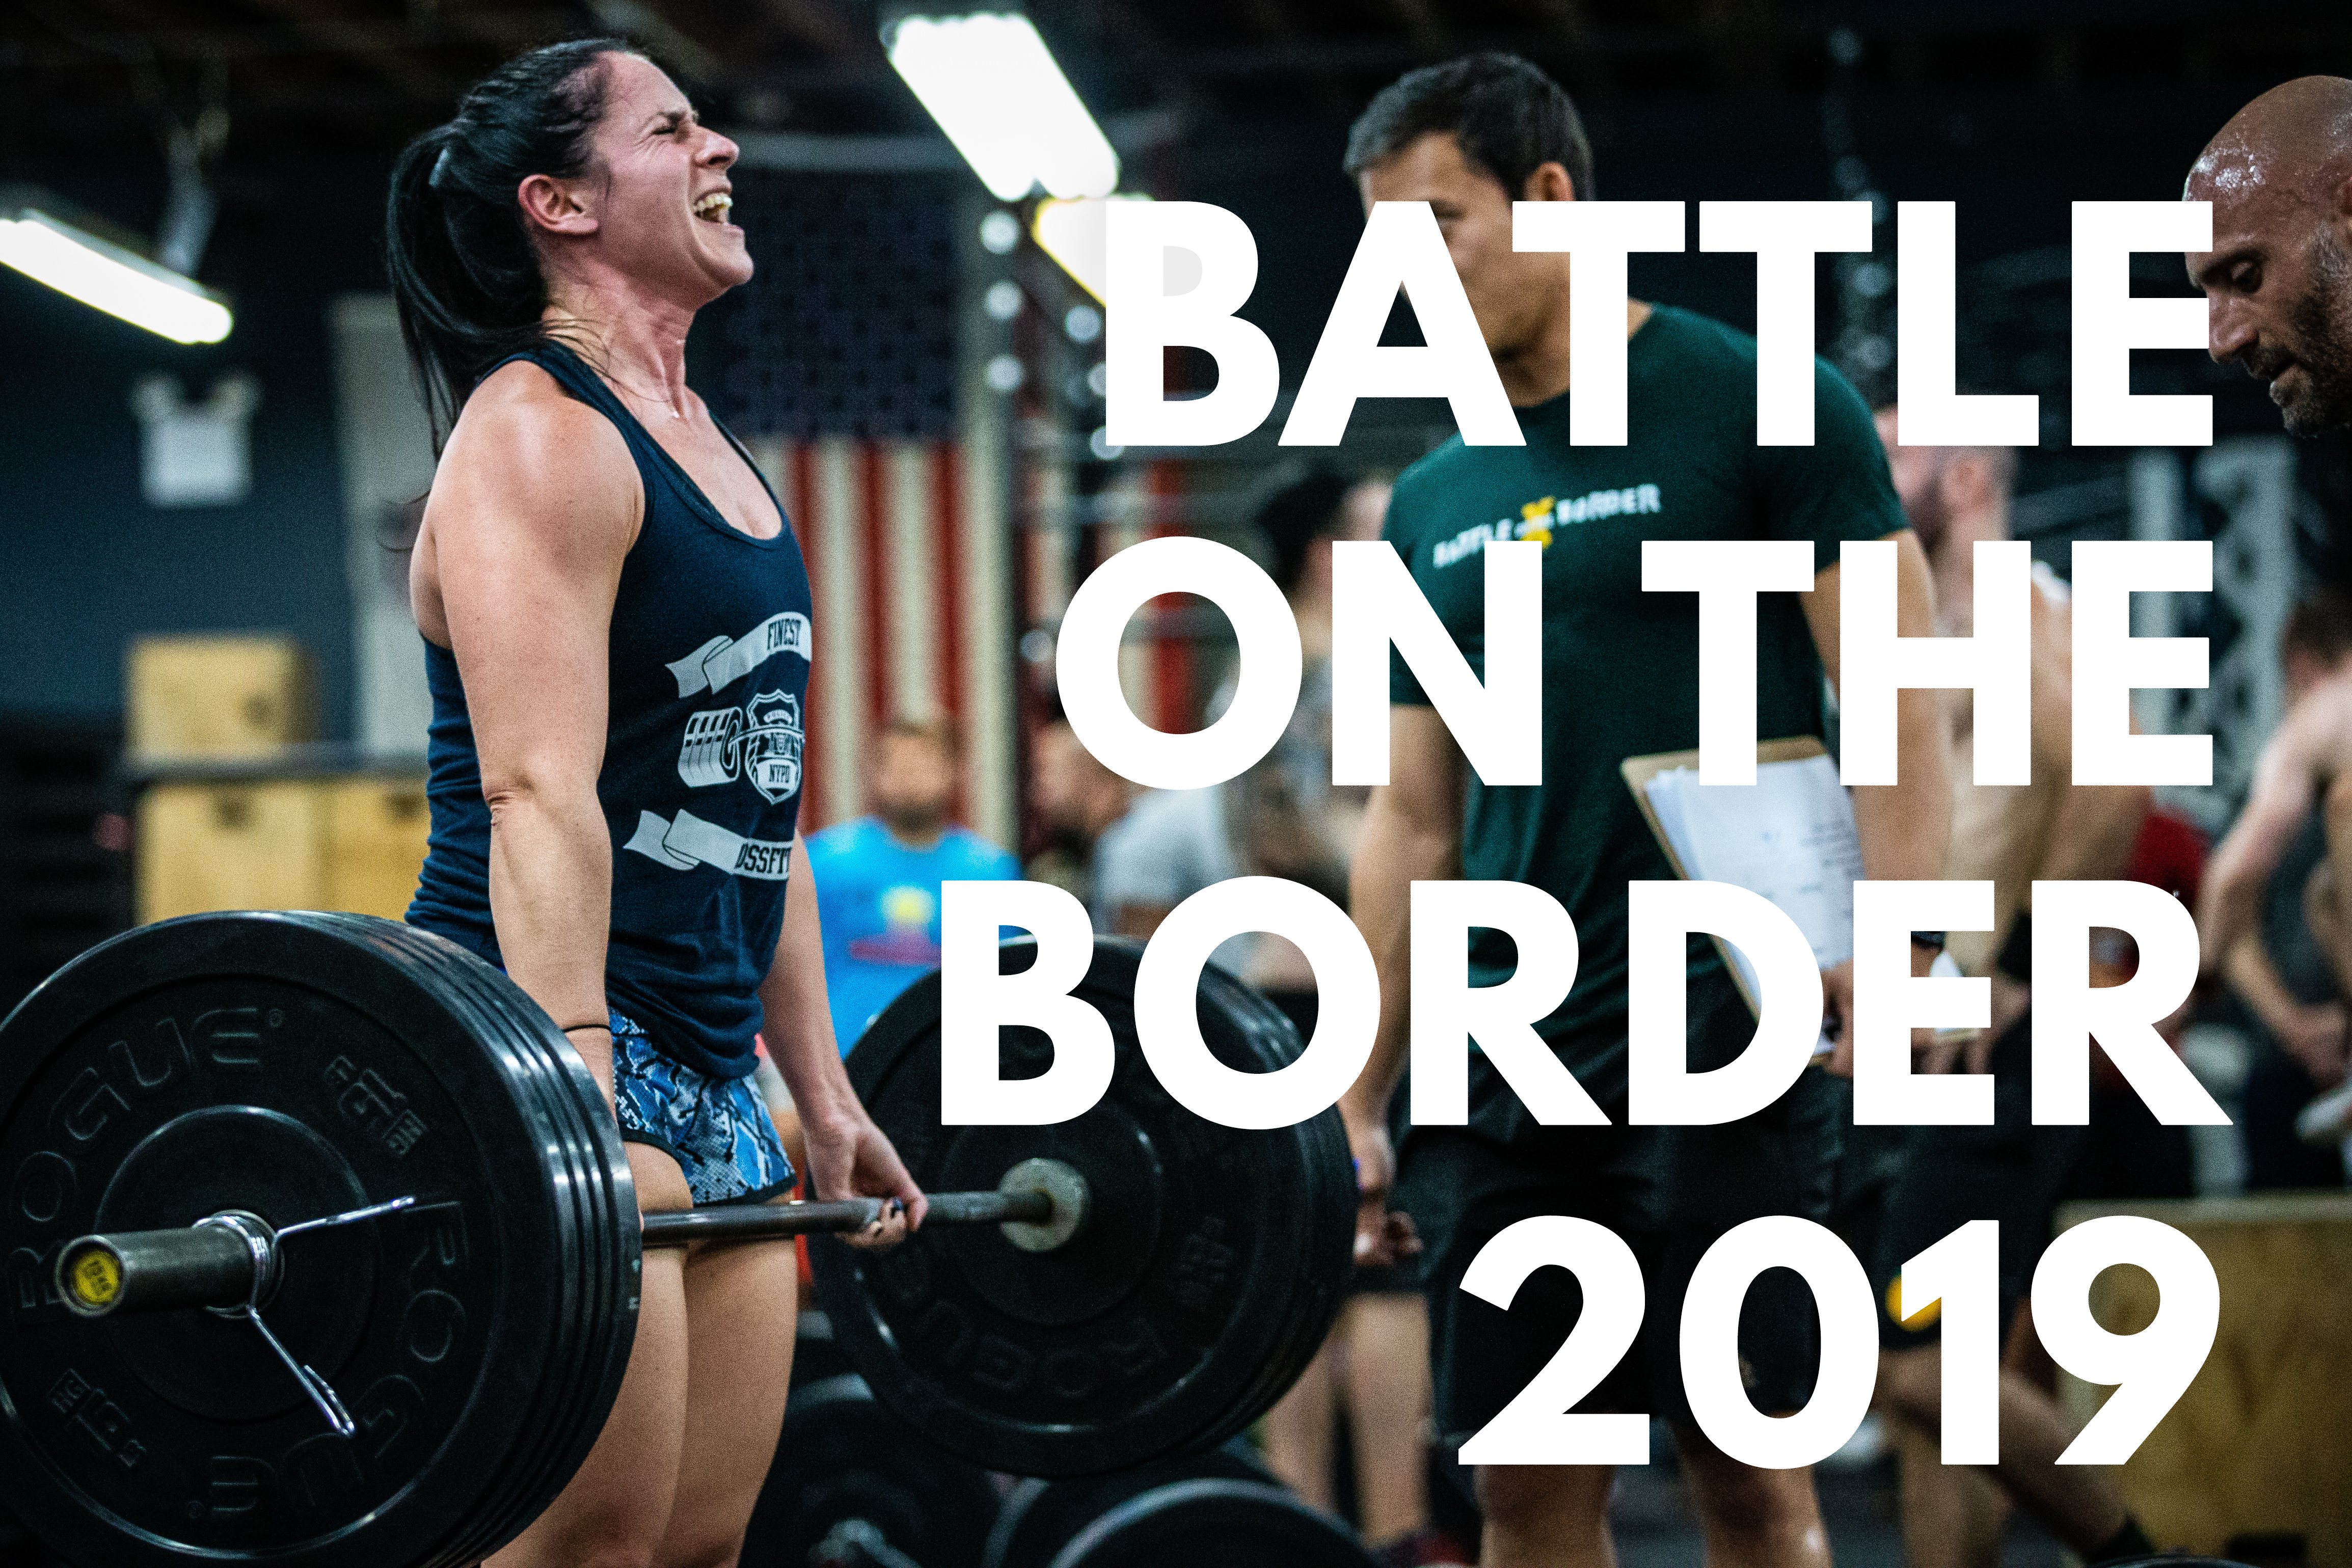 "Battle on the Border 2019.  All photos at <a href=""http://www.superclearyphoto.com/event/Battle-on-the-Border-2019"">http://www.superclearyphoto.com/event/Battle-on-the-Border-2019</a> - use code 'battle40' to get 40% off through Sunday.  Preorder customers make sure to check your email for redemption instructions"